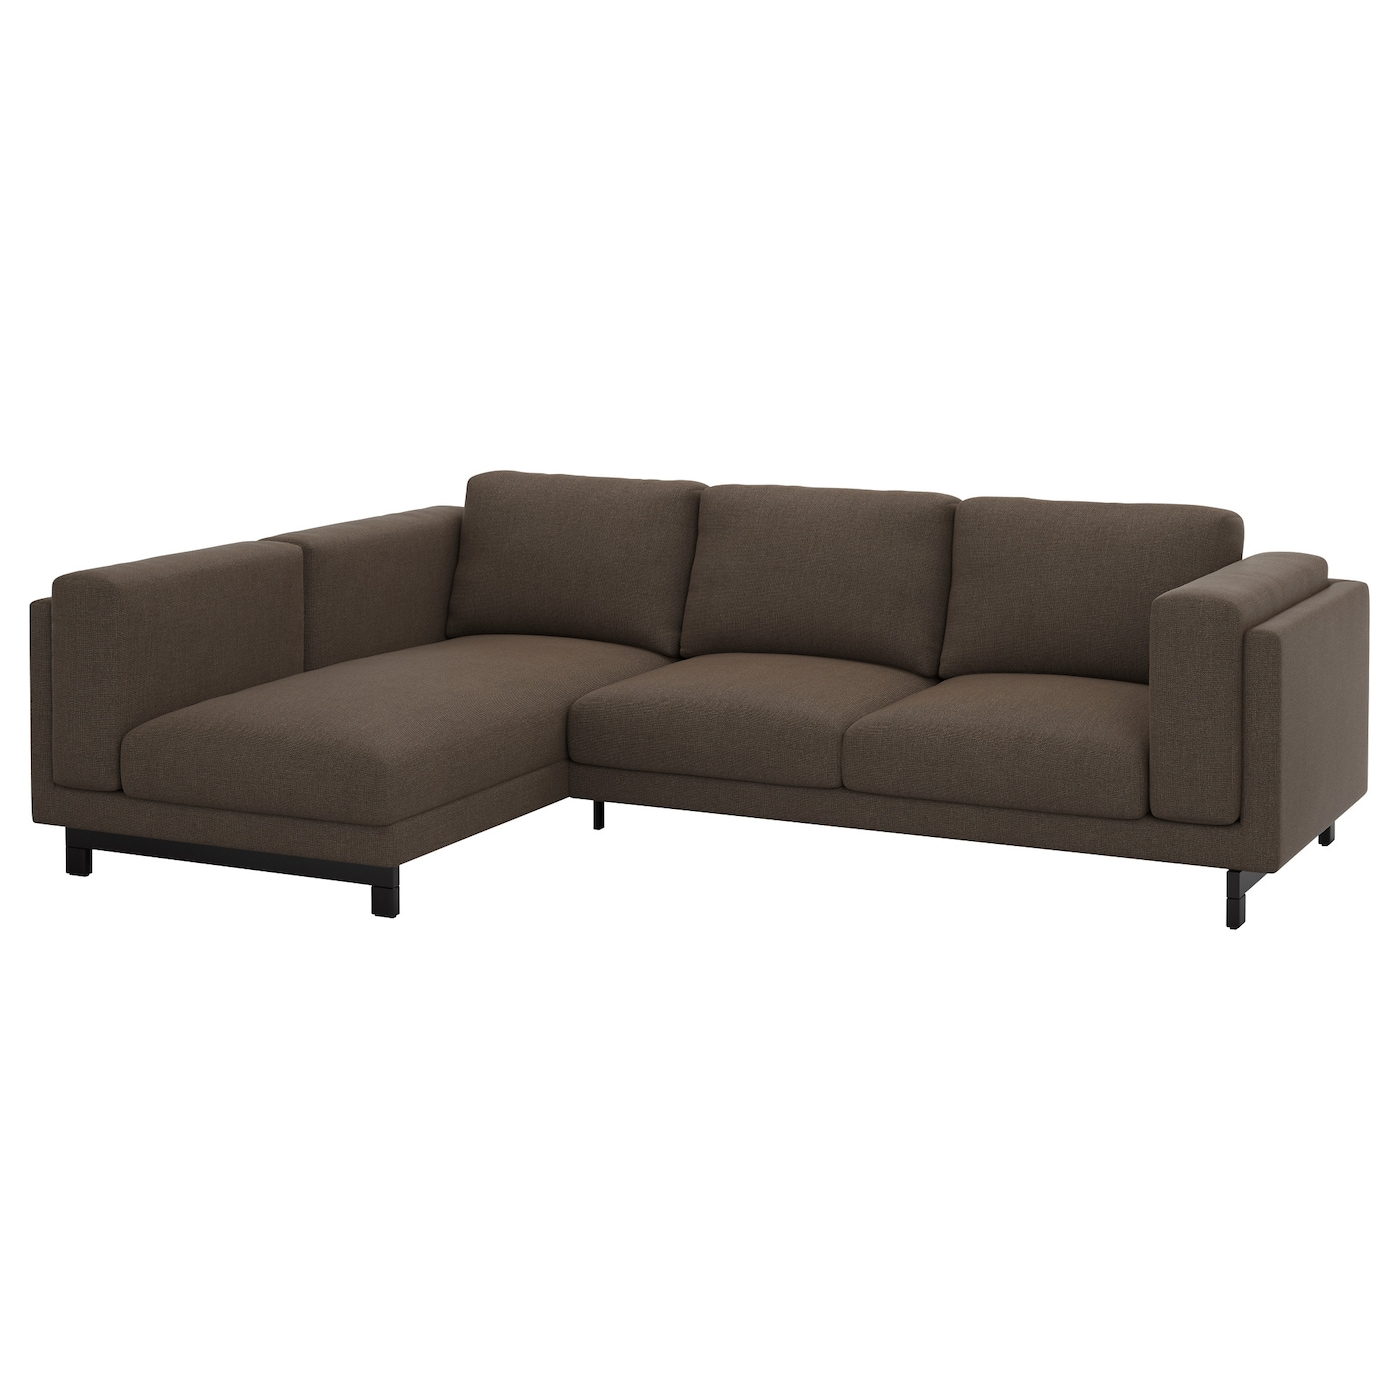 Nockeby two seat sofa w chaise longue left ten brown wood for 2 seater chaise sofa